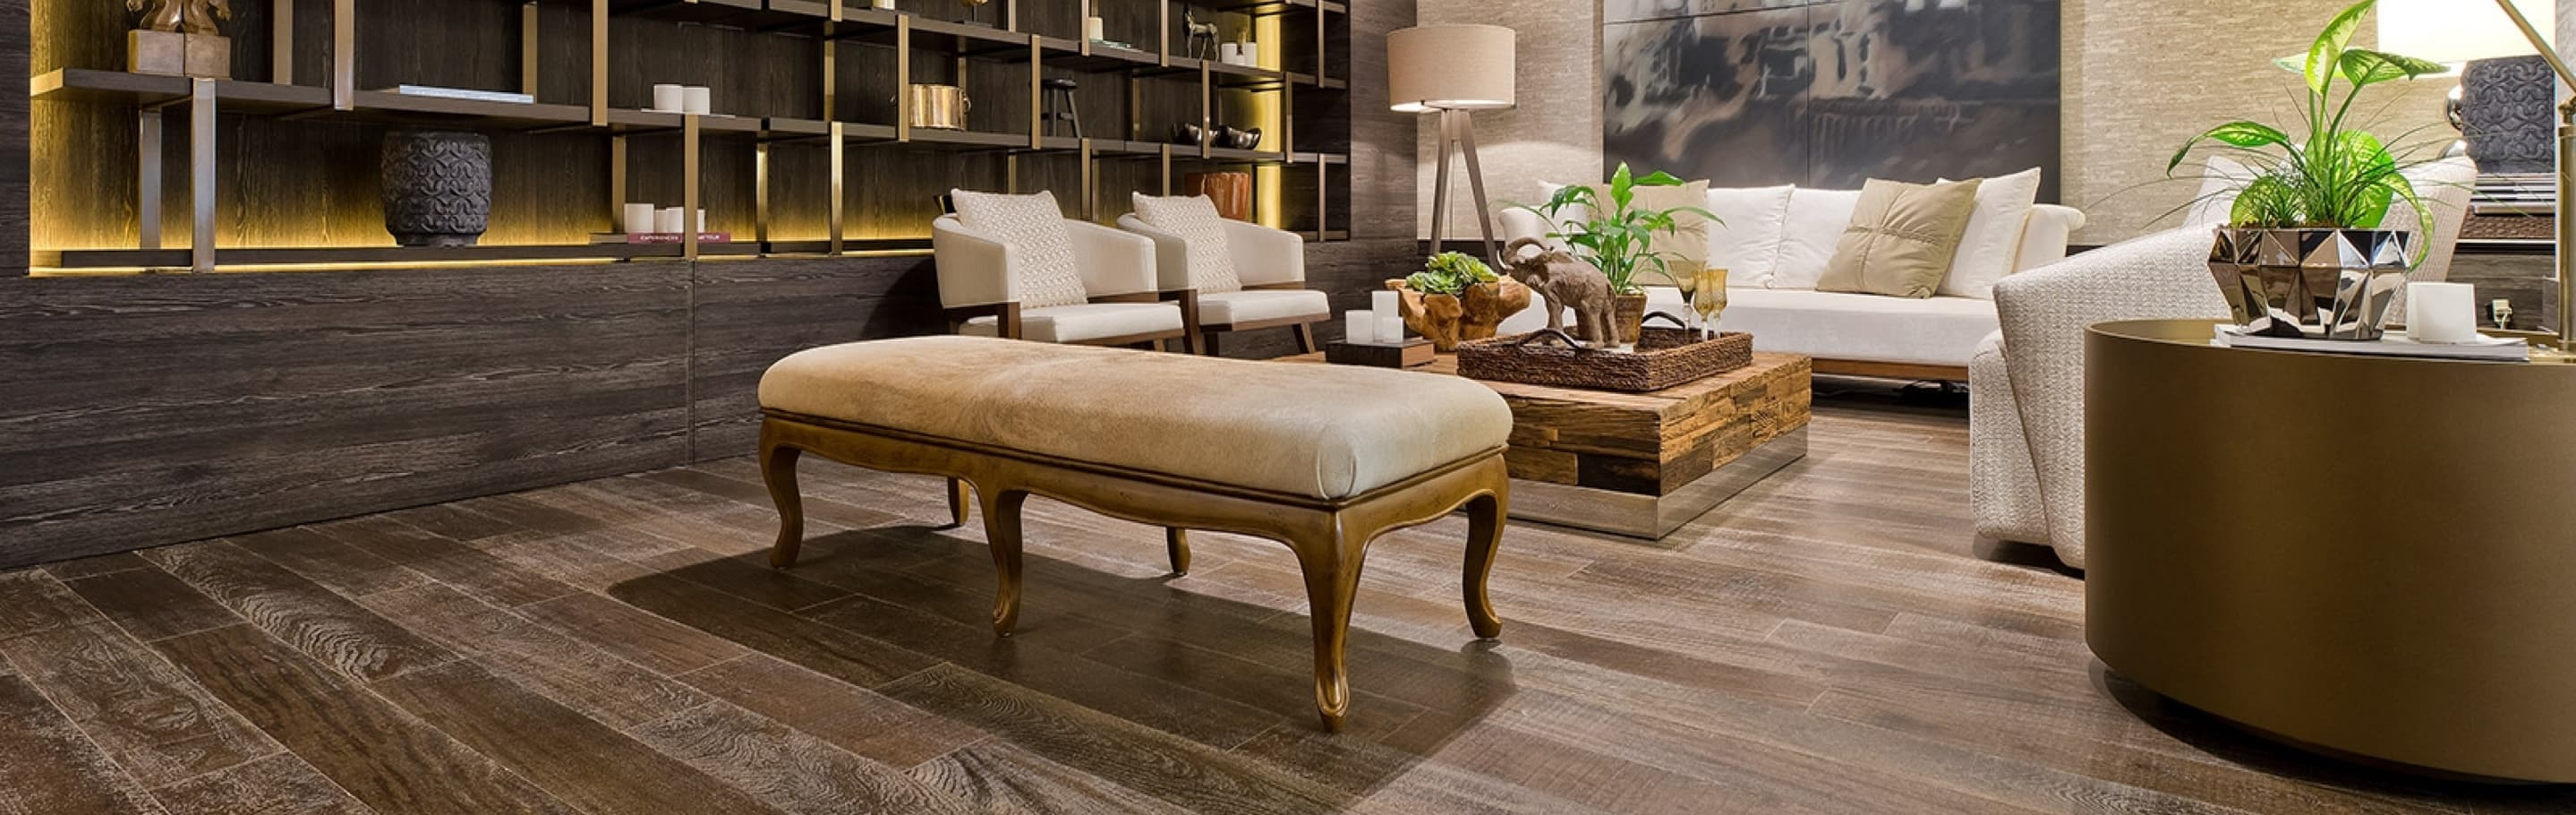 Flooring South Tampa Fl Carpet Crafters Rug Co